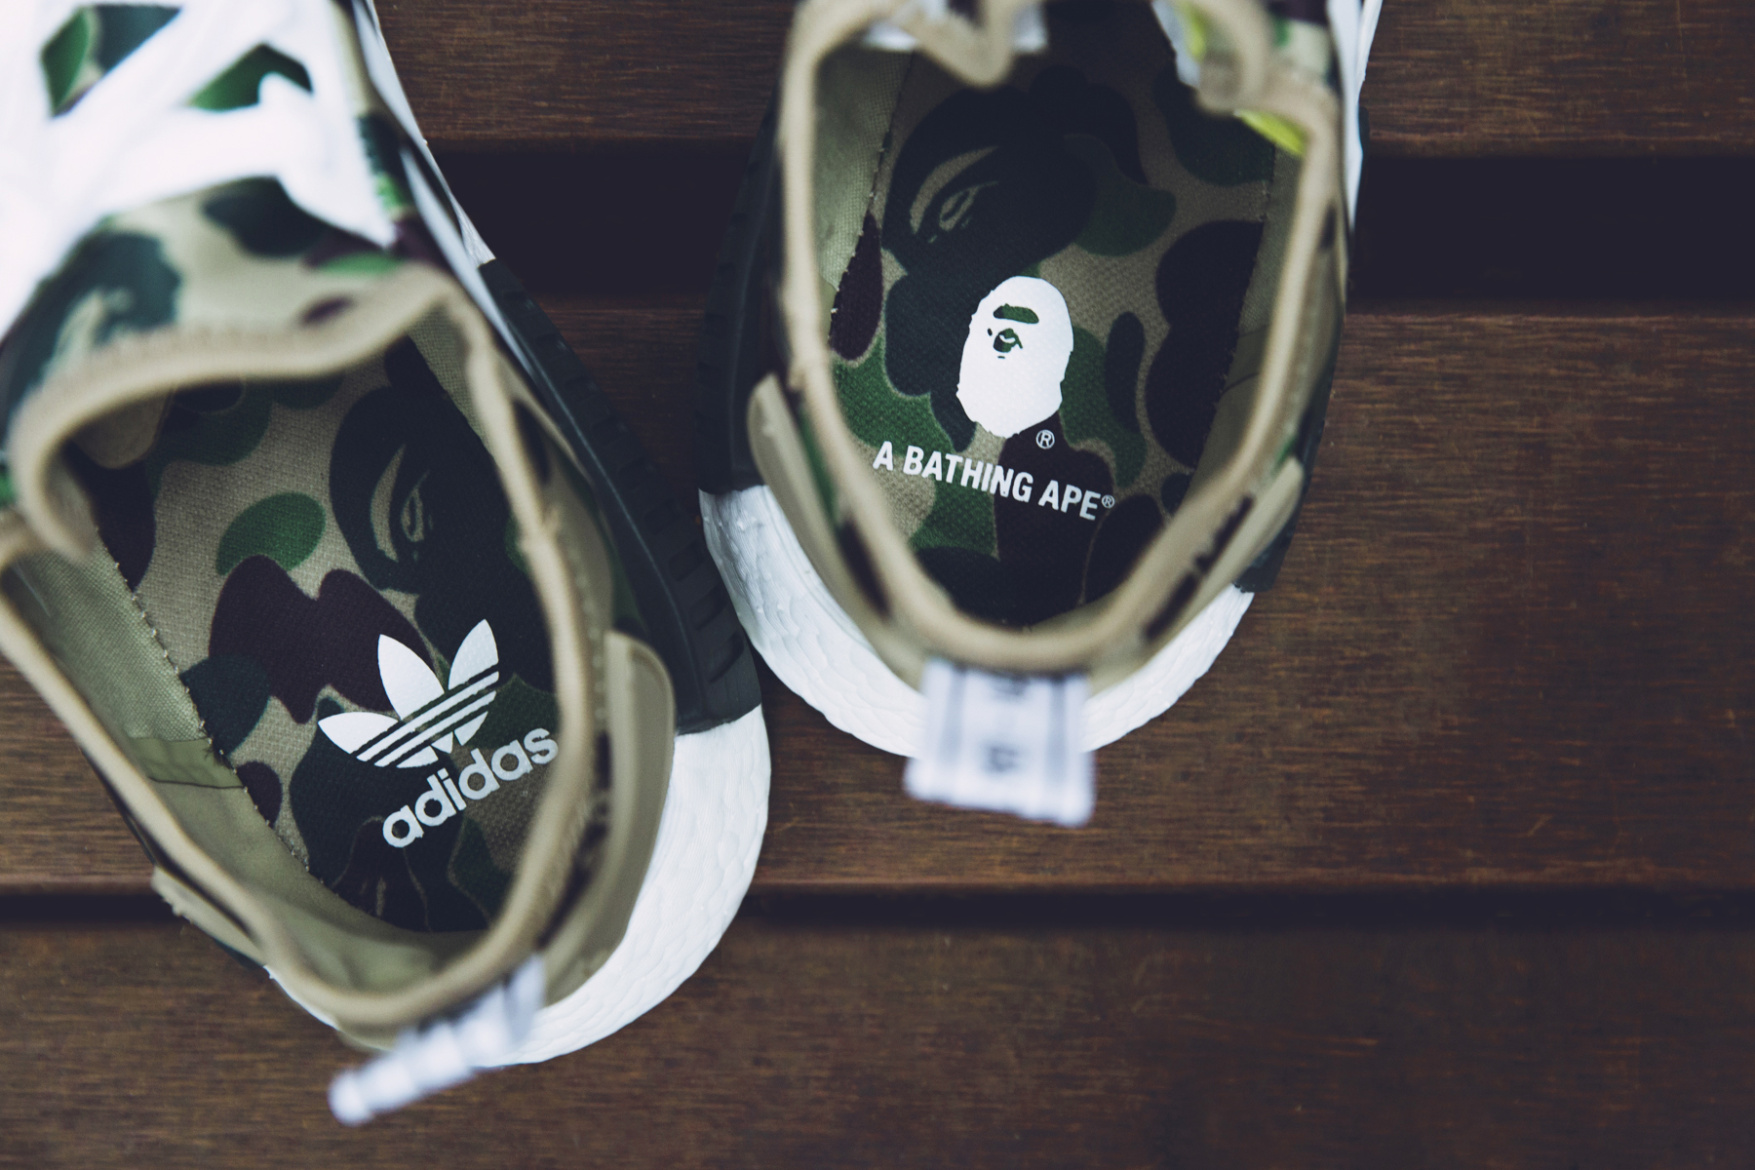 bc768164043f0 ... bape-x-adidas-originals-nmd-closer-look-7 ...